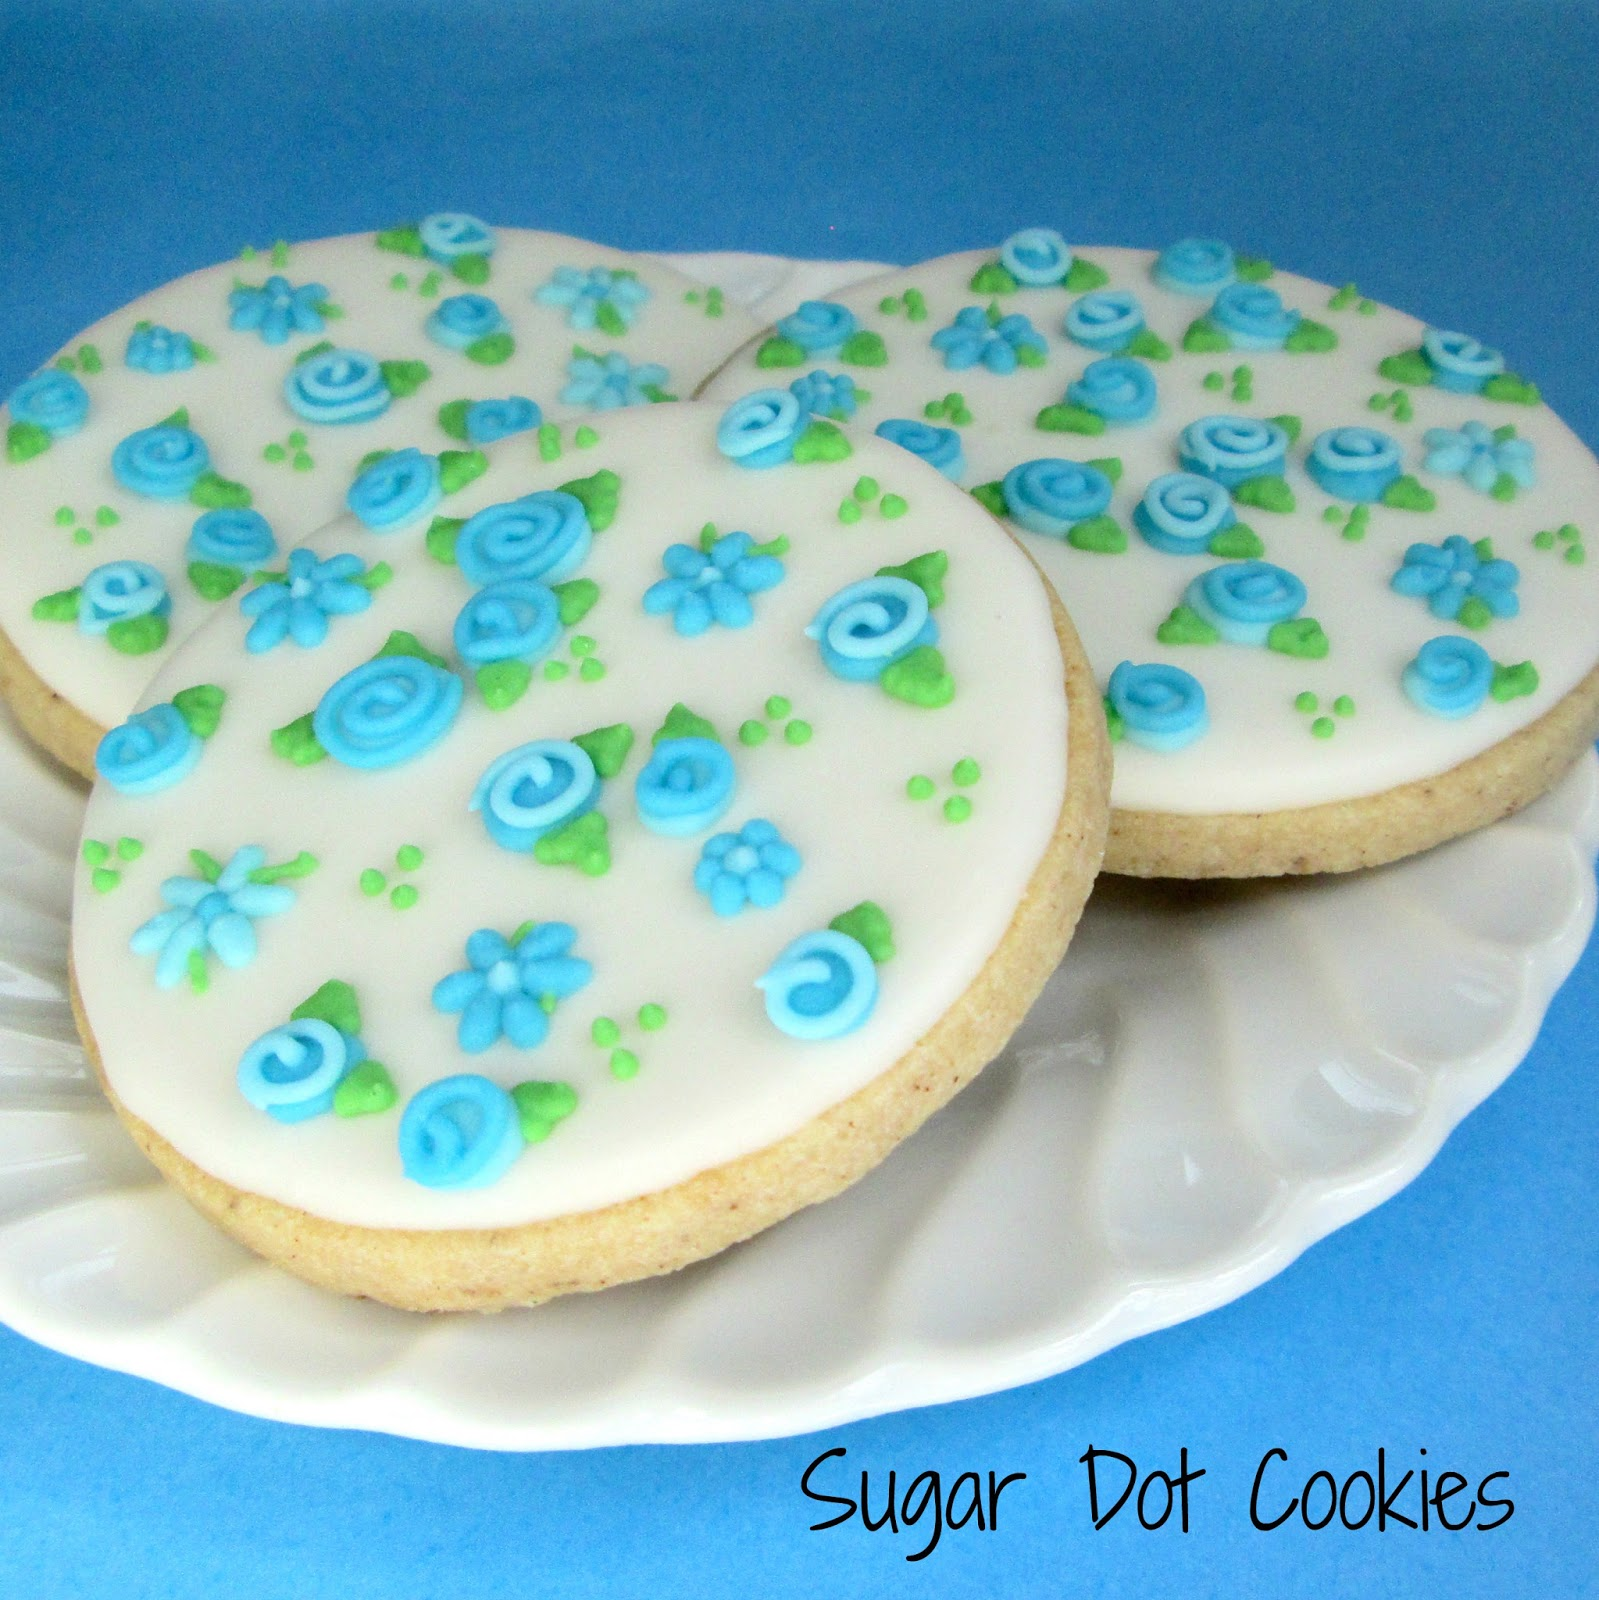 Sugar Dot Cookies Royal Icing Transfer Flowers